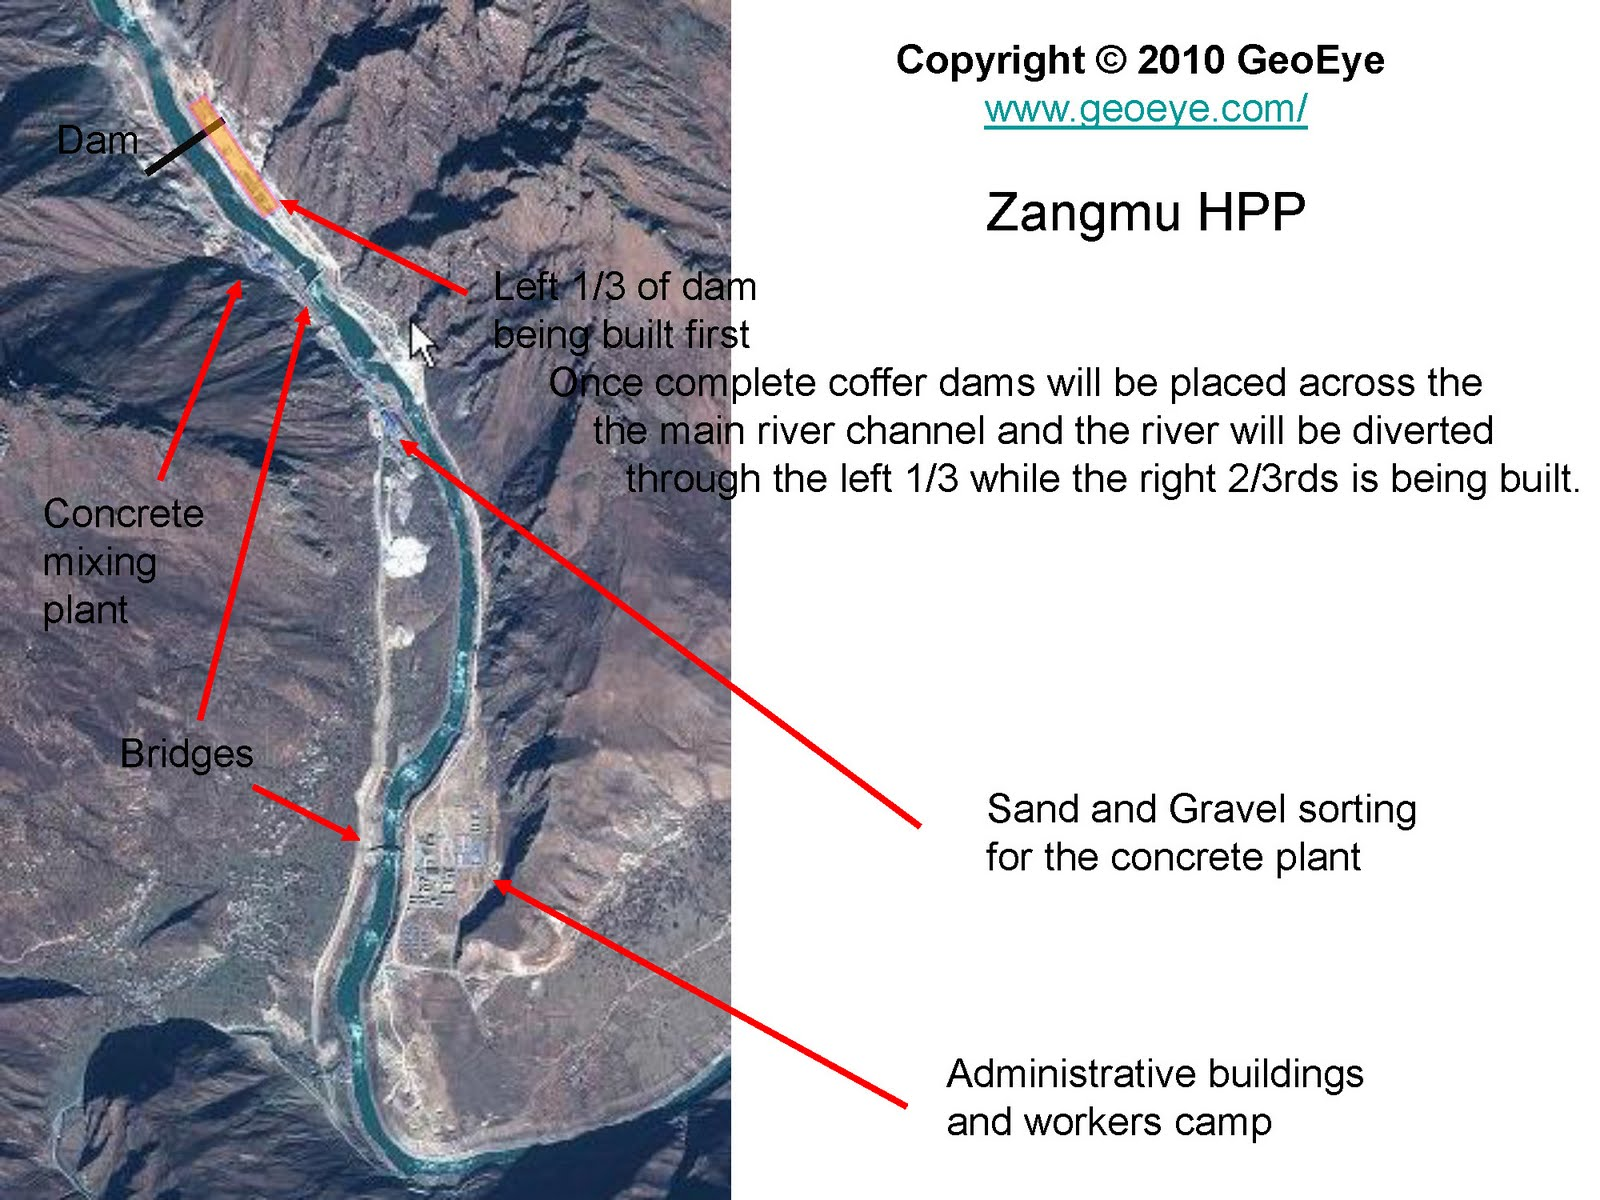 Three gorges dam project china s biggest project since the great wall -  Img